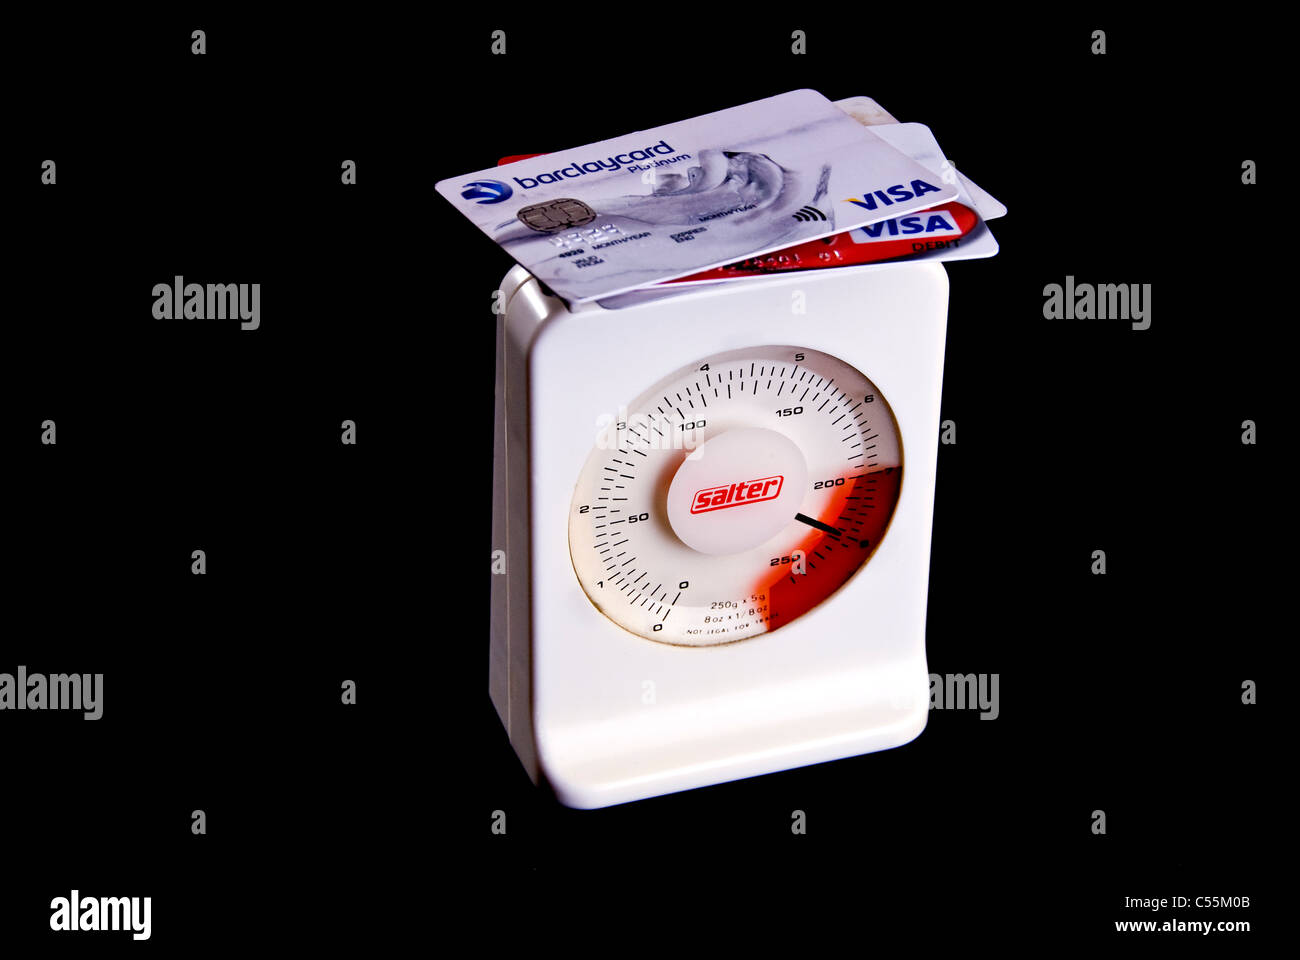 Credit cards on scales, heavy with debt going into the red. - Stock Image